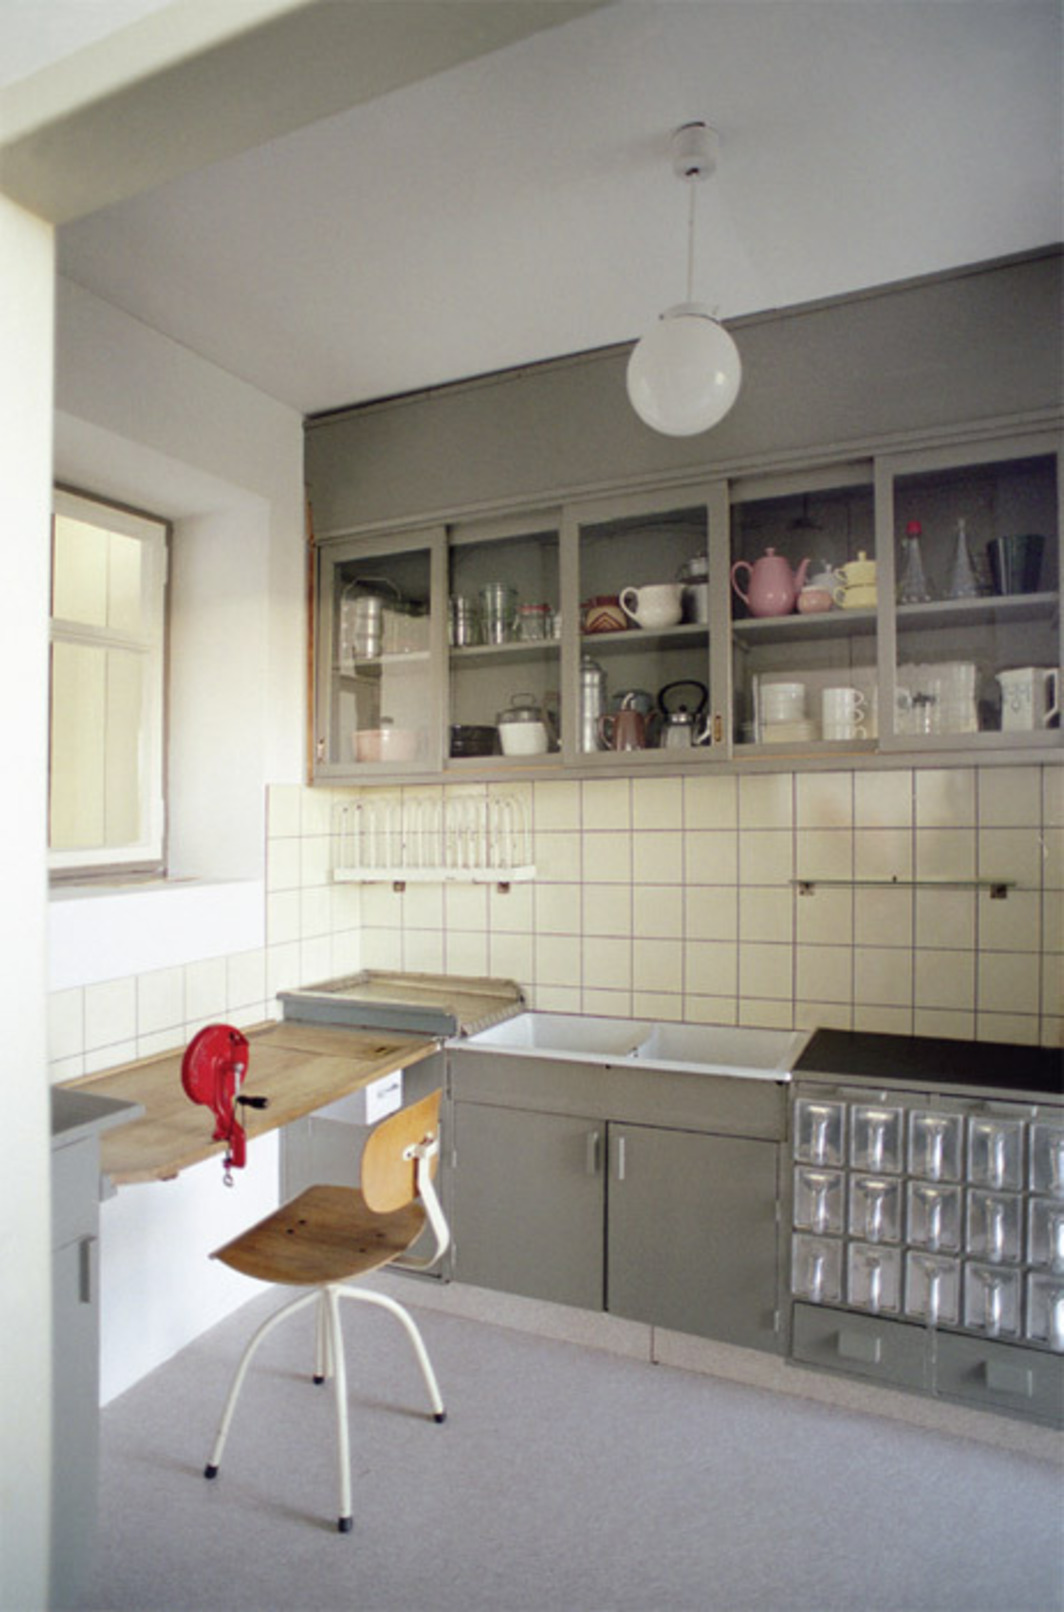 "Margarete Schütte-Lihotzky, Frankfurt Kitchen from the Ginnheim-Höhenblick Housing Estate (reconstruction), 1926–27, Frankfurt, 8' 9"" x 12' 10"" x 6' 10""."